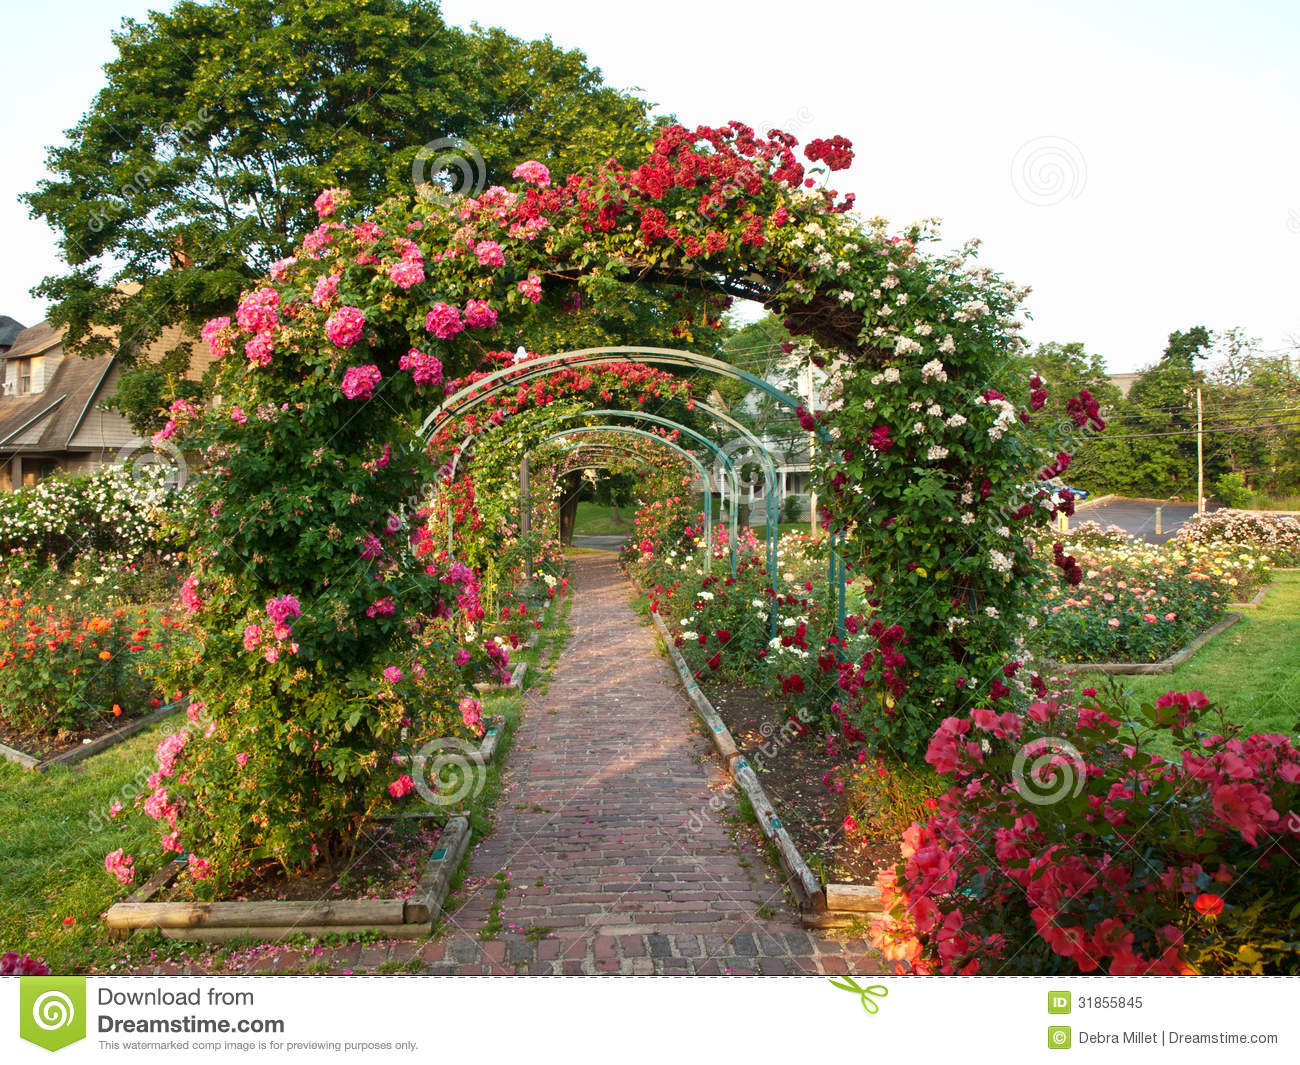 Rose garden royalty free stock photo image 31855845 for Formal rose garden layout